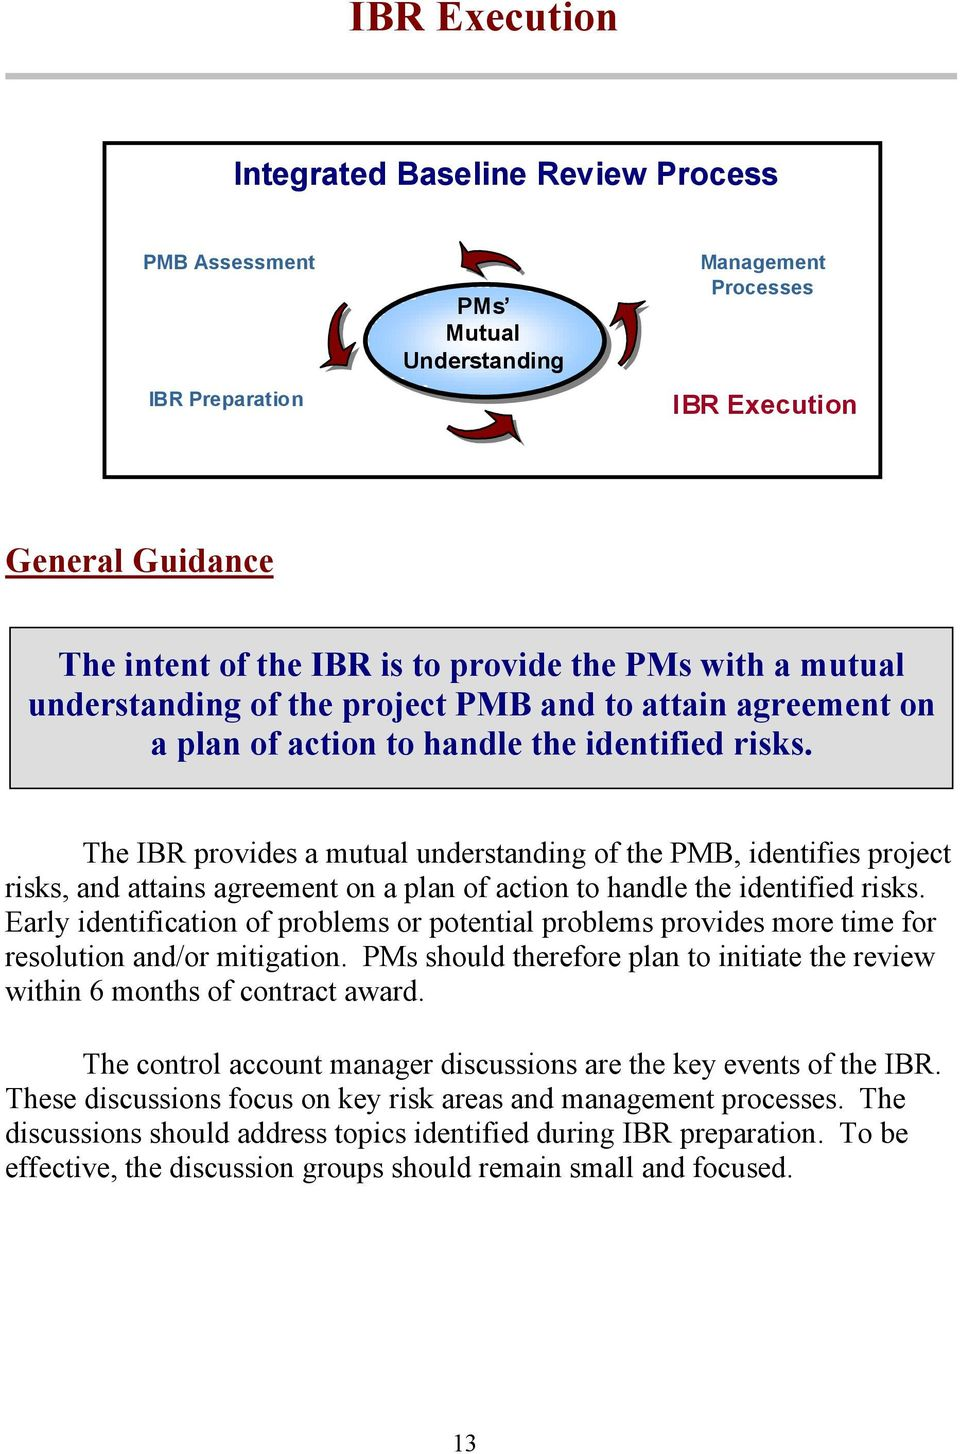 The IBR provides a mutual understanding of the PMB, identifies project risks, and attains agreement on a plan of action to handle the identified risks.